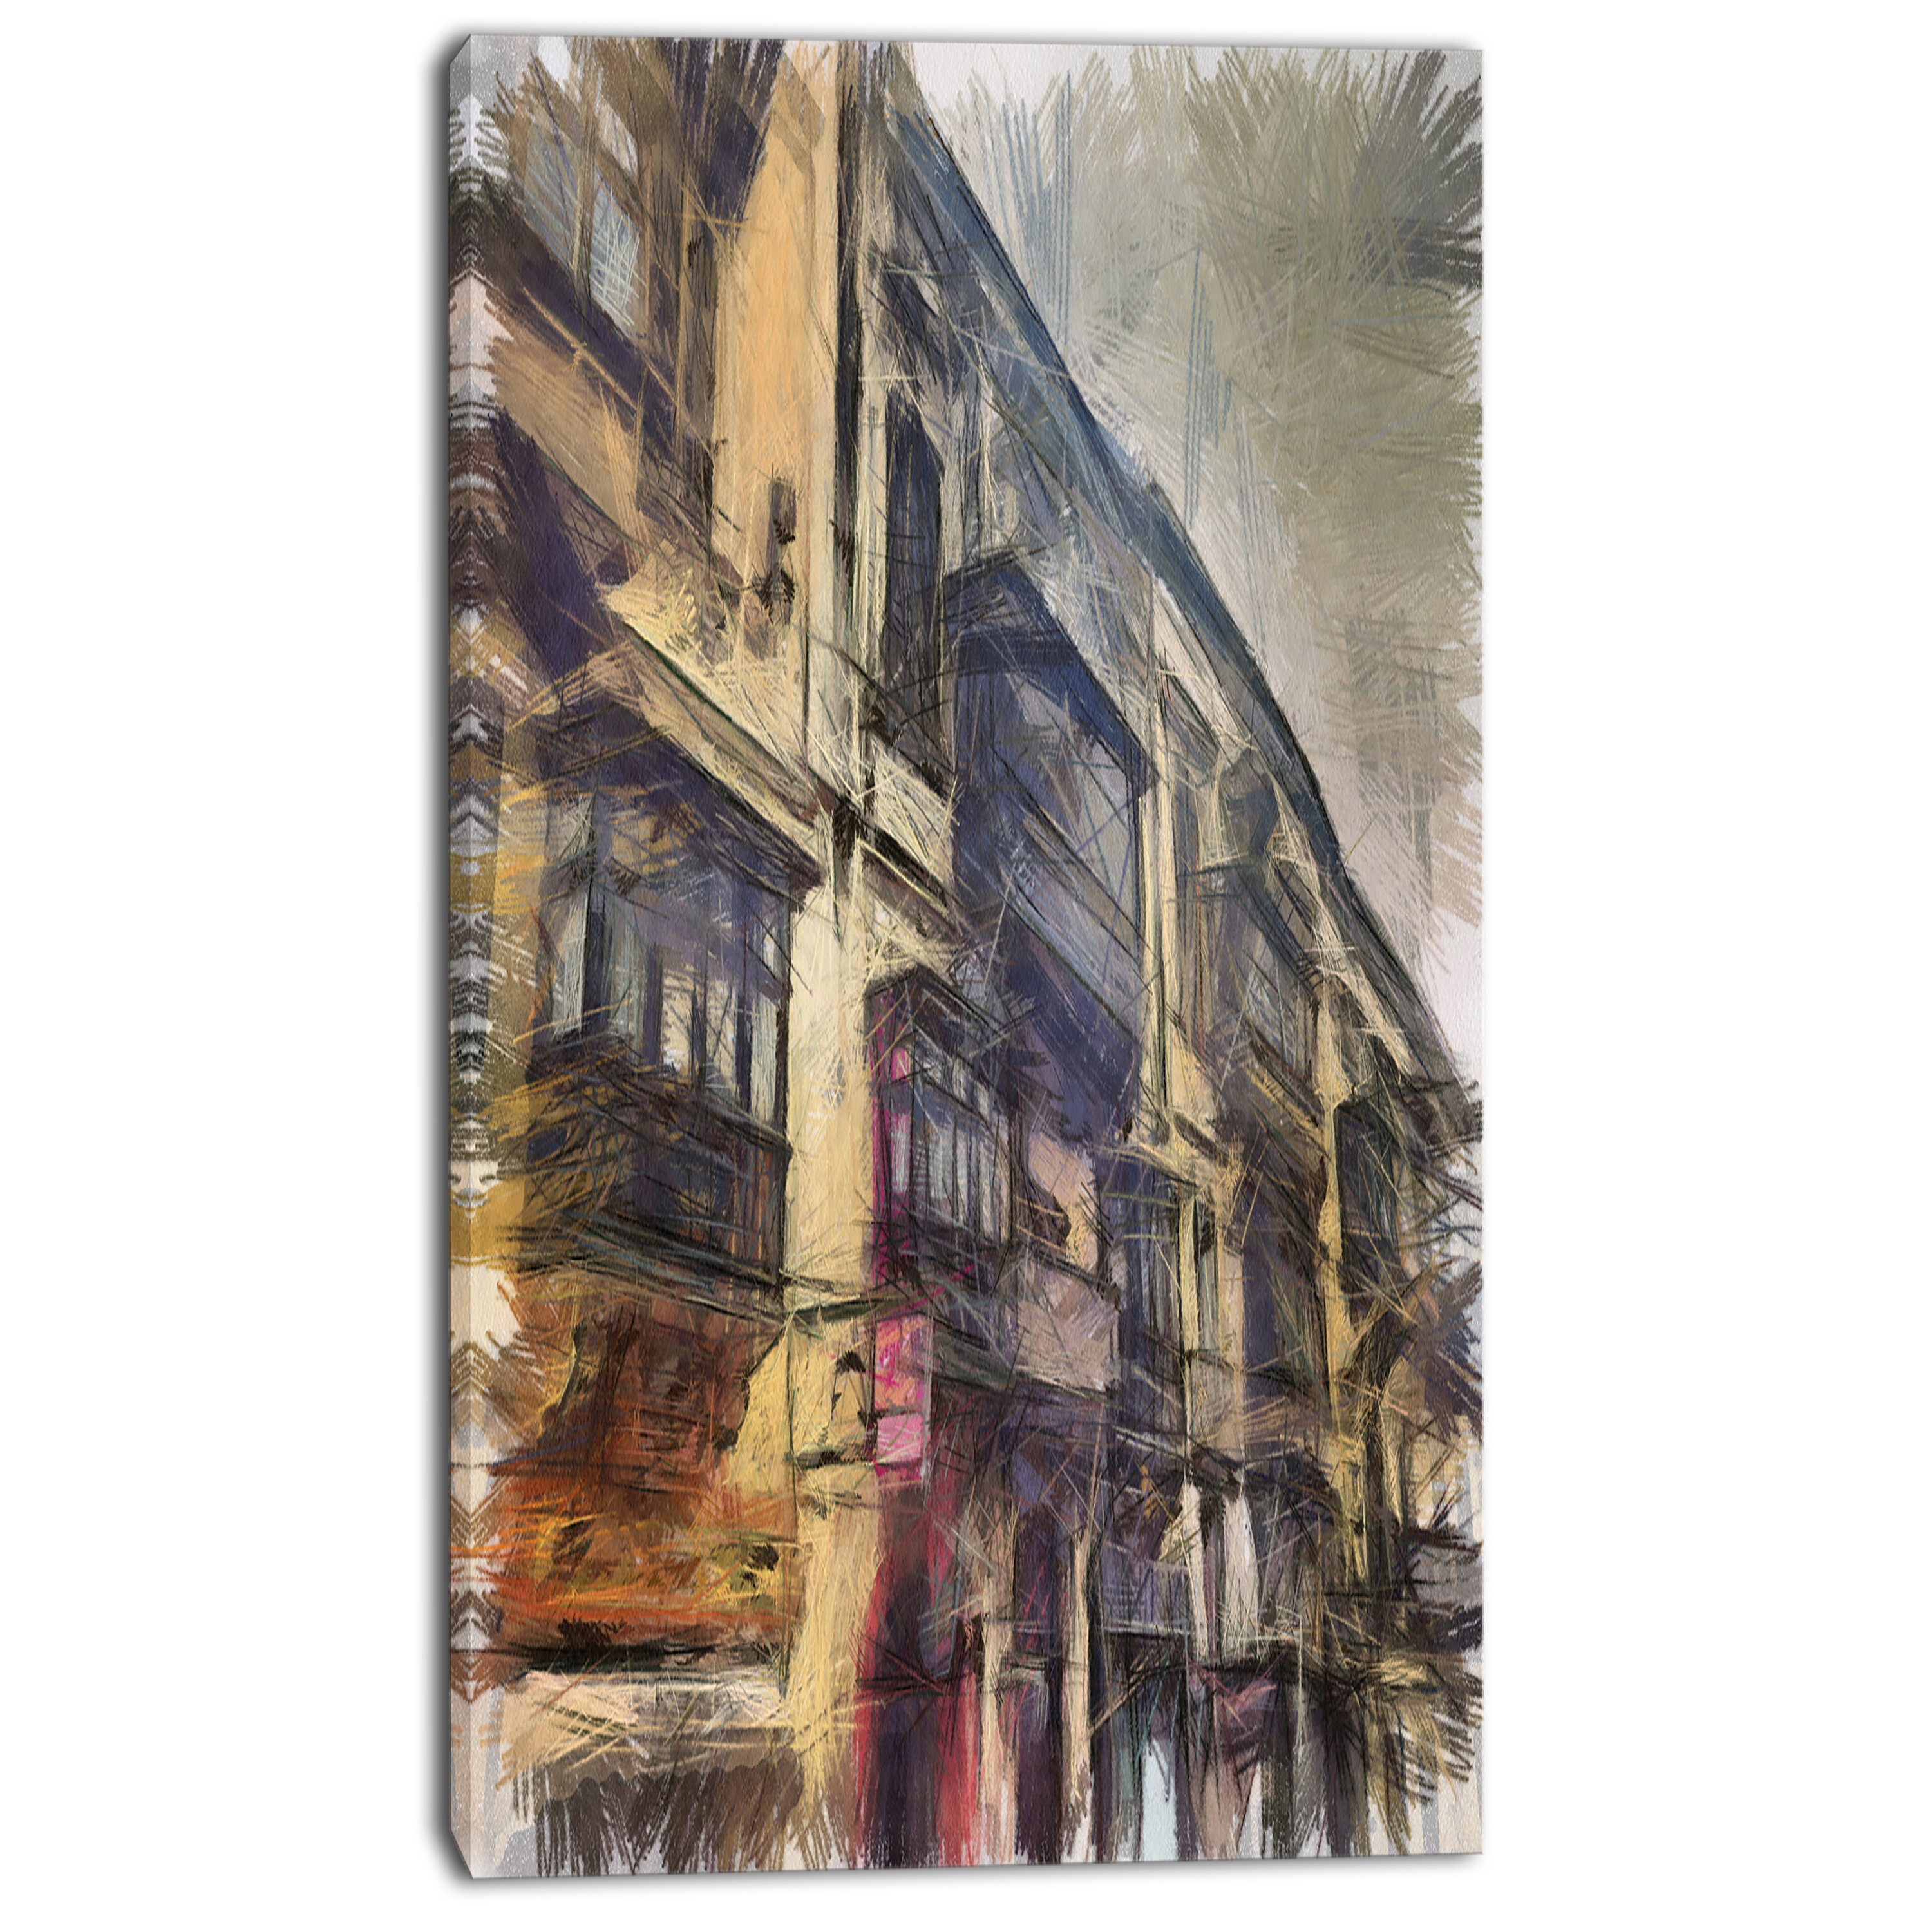 Designart Old City Street Watercolor Painting Painting Print On Wrapped Canvas Wayfair